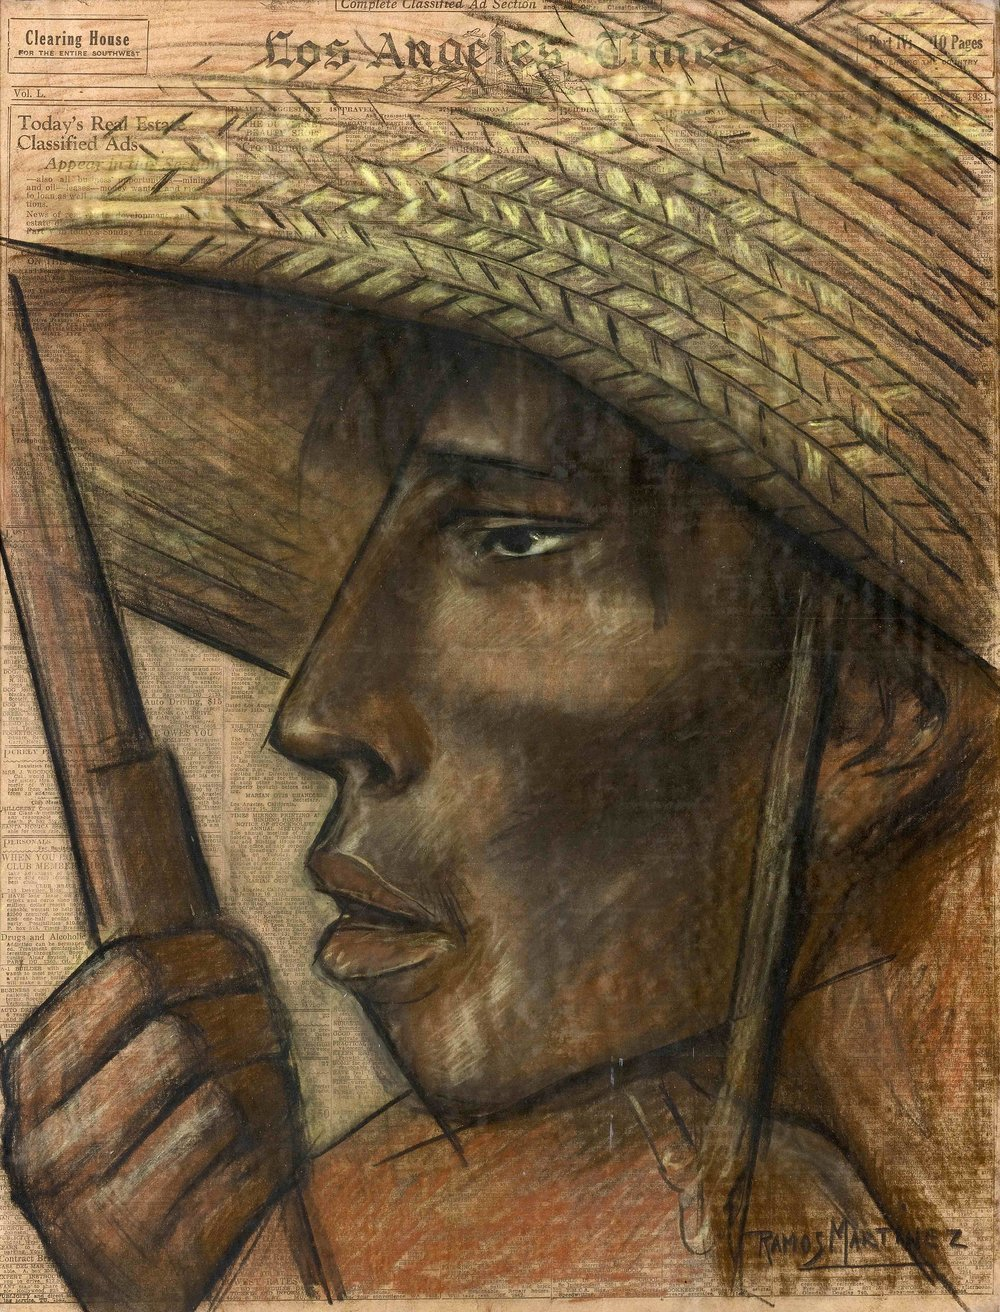 Cabeza de Campesino / Head of a Peasant  1931 charcoal and Conté crayon on newsprint / carbón y crayon Conté sobre papel periódico ( Los Angeles Times , January 25, 1931) 21.9 x 16.6 inches; 55.6 x 42.2 centímetros Private collection